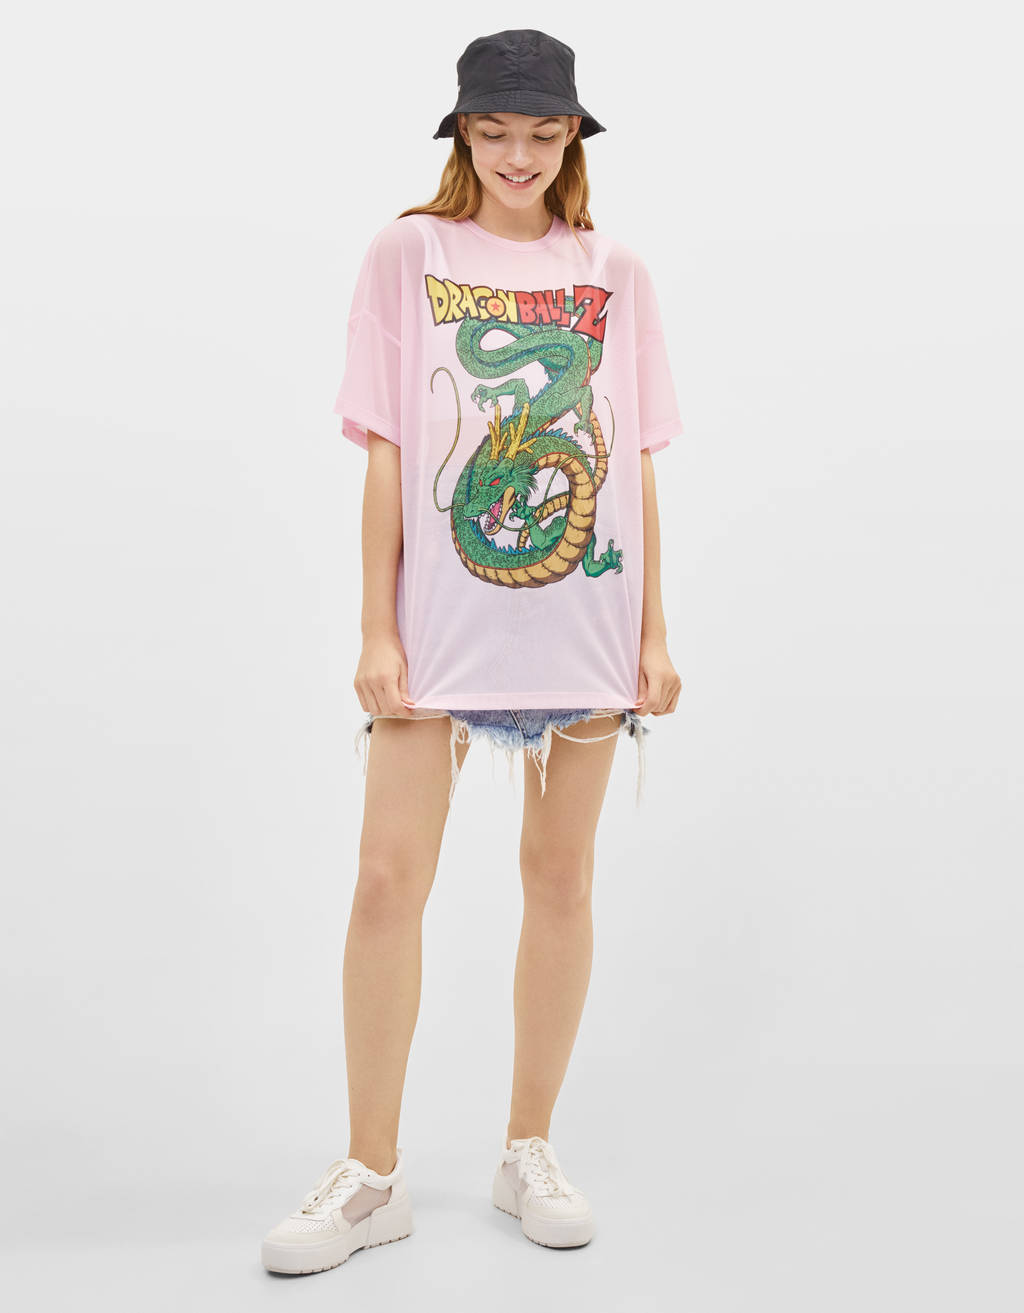 Dragon Ball tül t-shirt